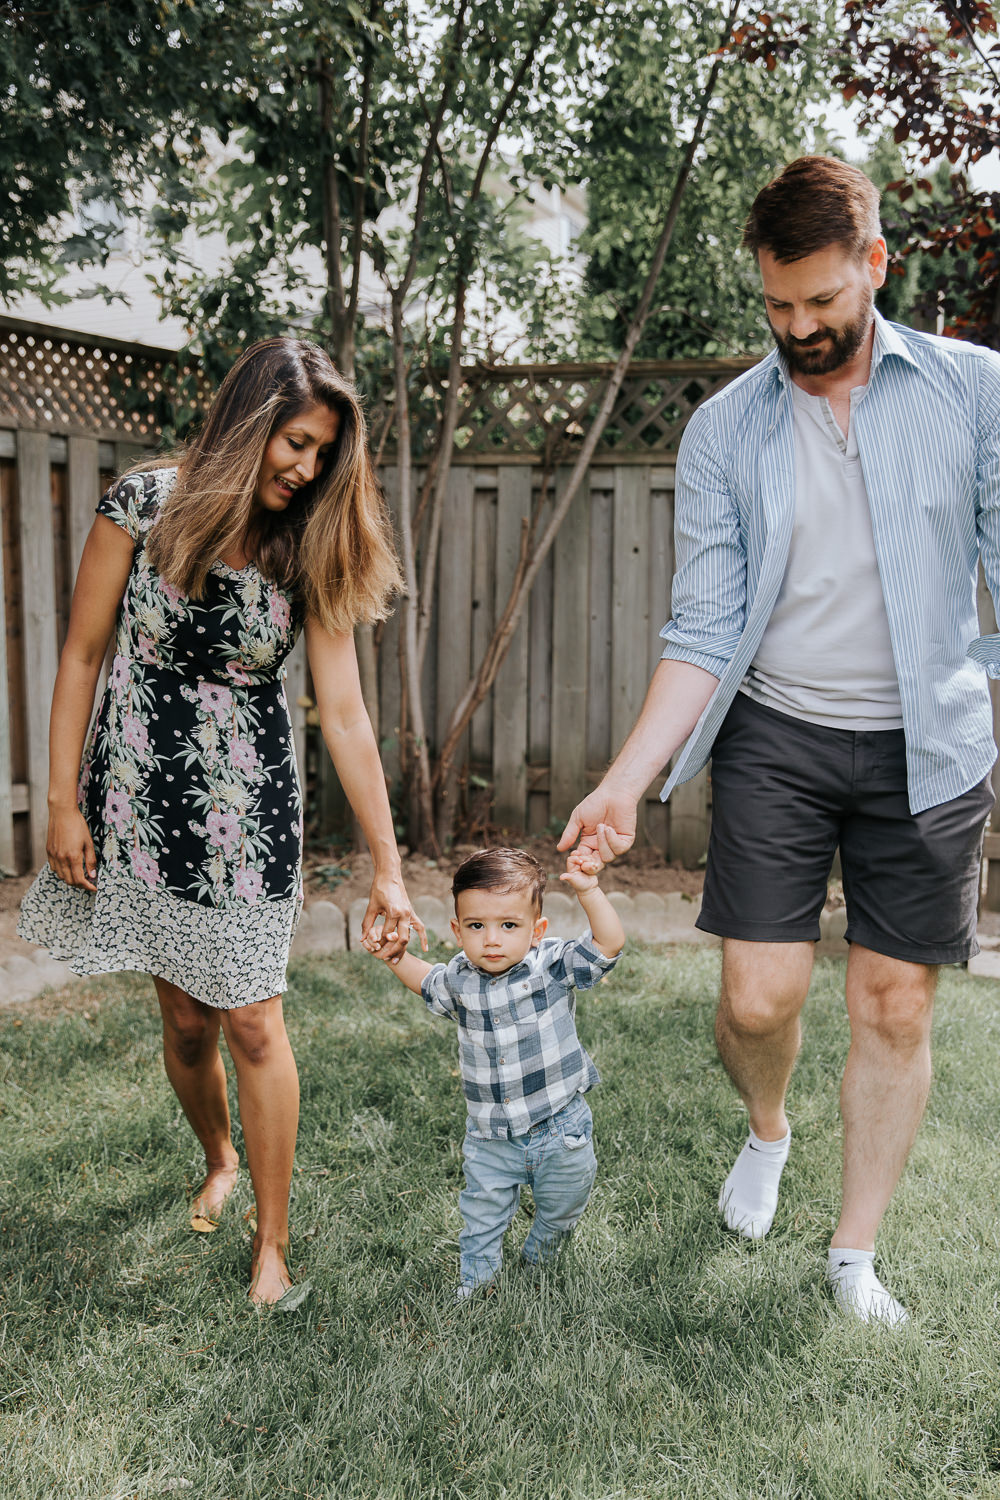 1 year old baby boy with dark hair in white and blue plaid shirt and jeans holding mom and dad's hands as parents help him walk between them in backyard -GTA Lifestyle Photos